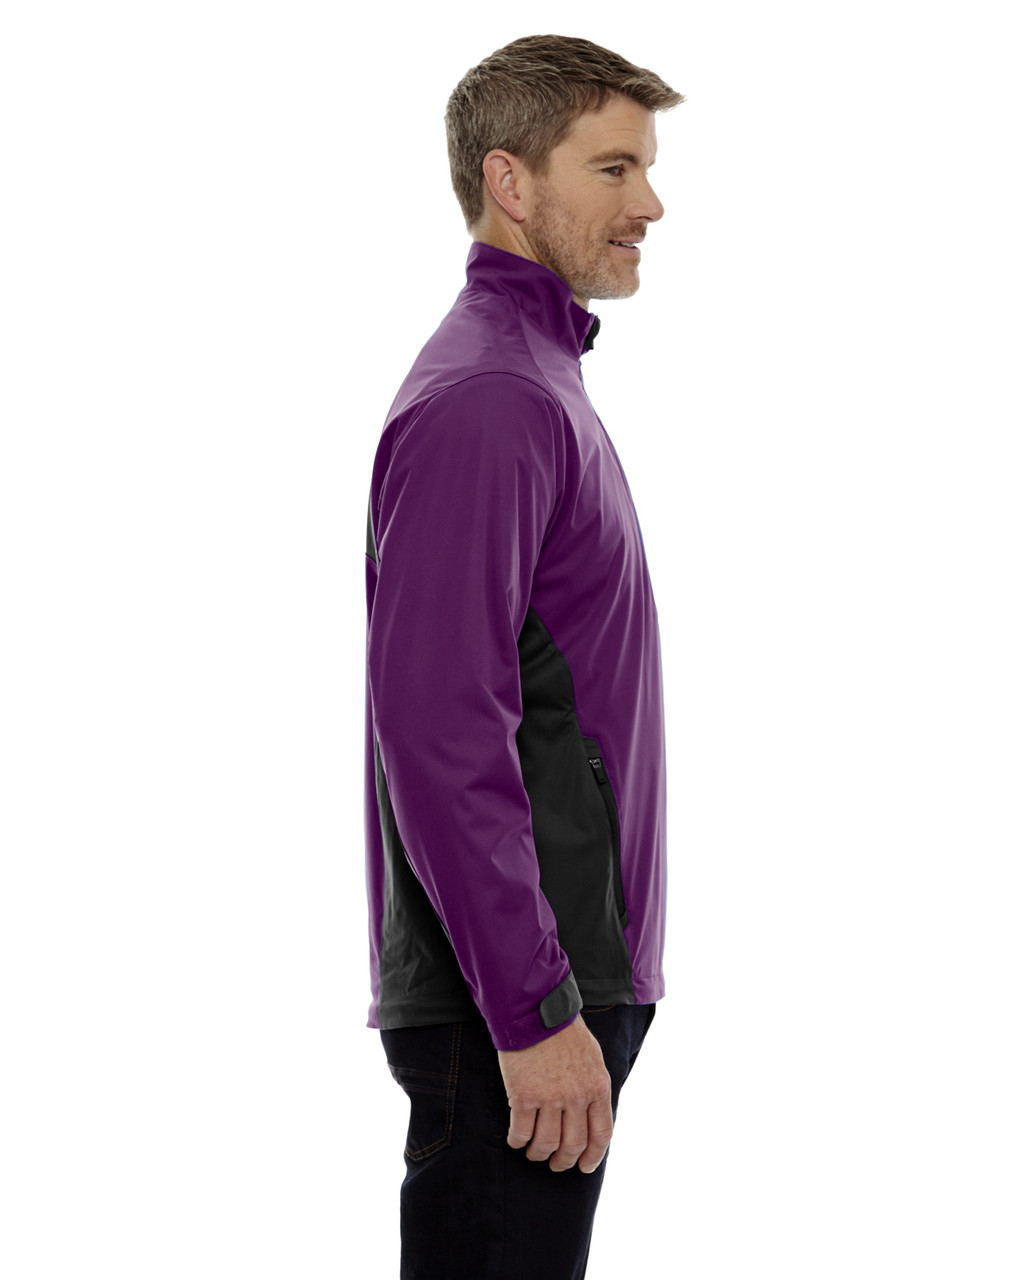 Mulberry Purple-side 88656 North End Sport Red Laminated Performance Stretch Wind Shirt